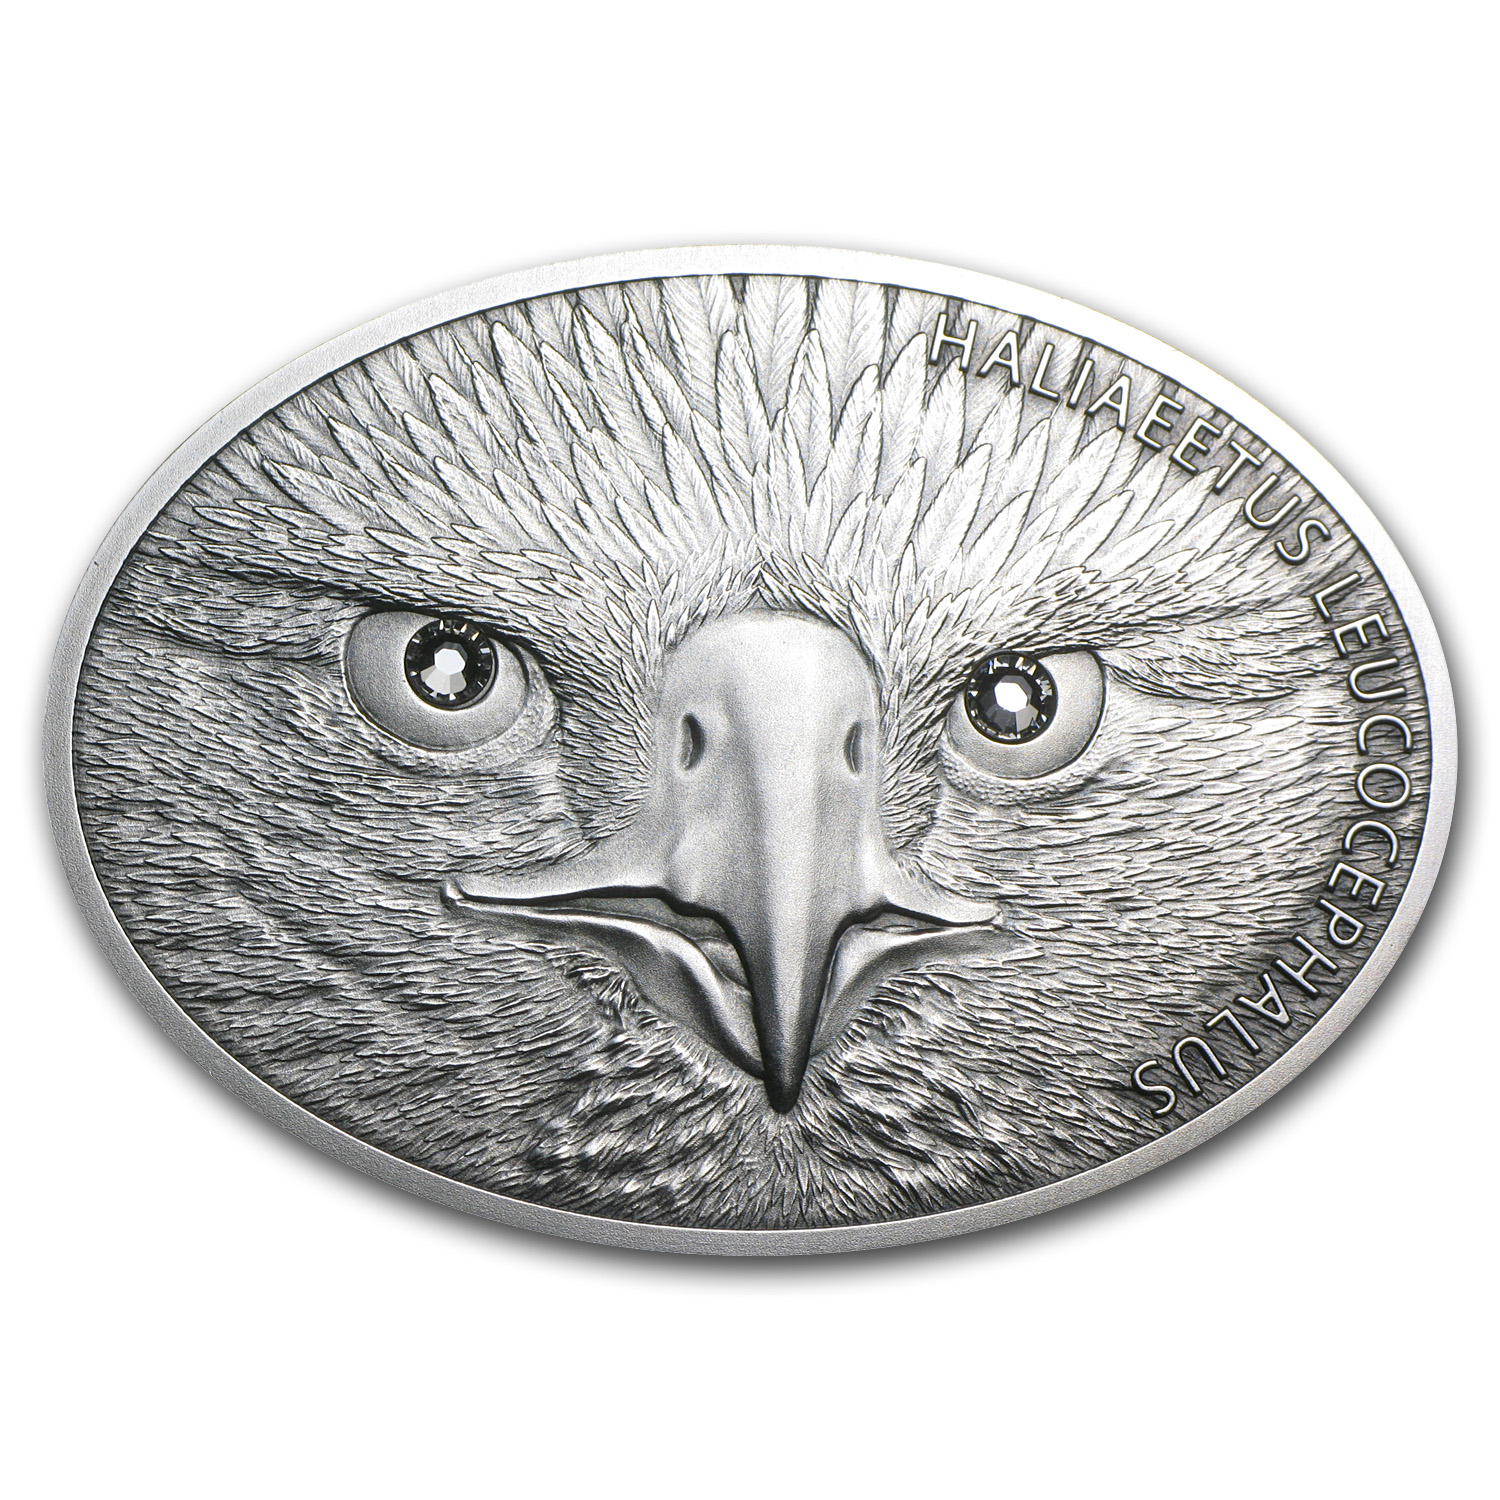 Fiji 2013 1 oz Silver $10 Fascinating Wildlife (Bald Eagle)